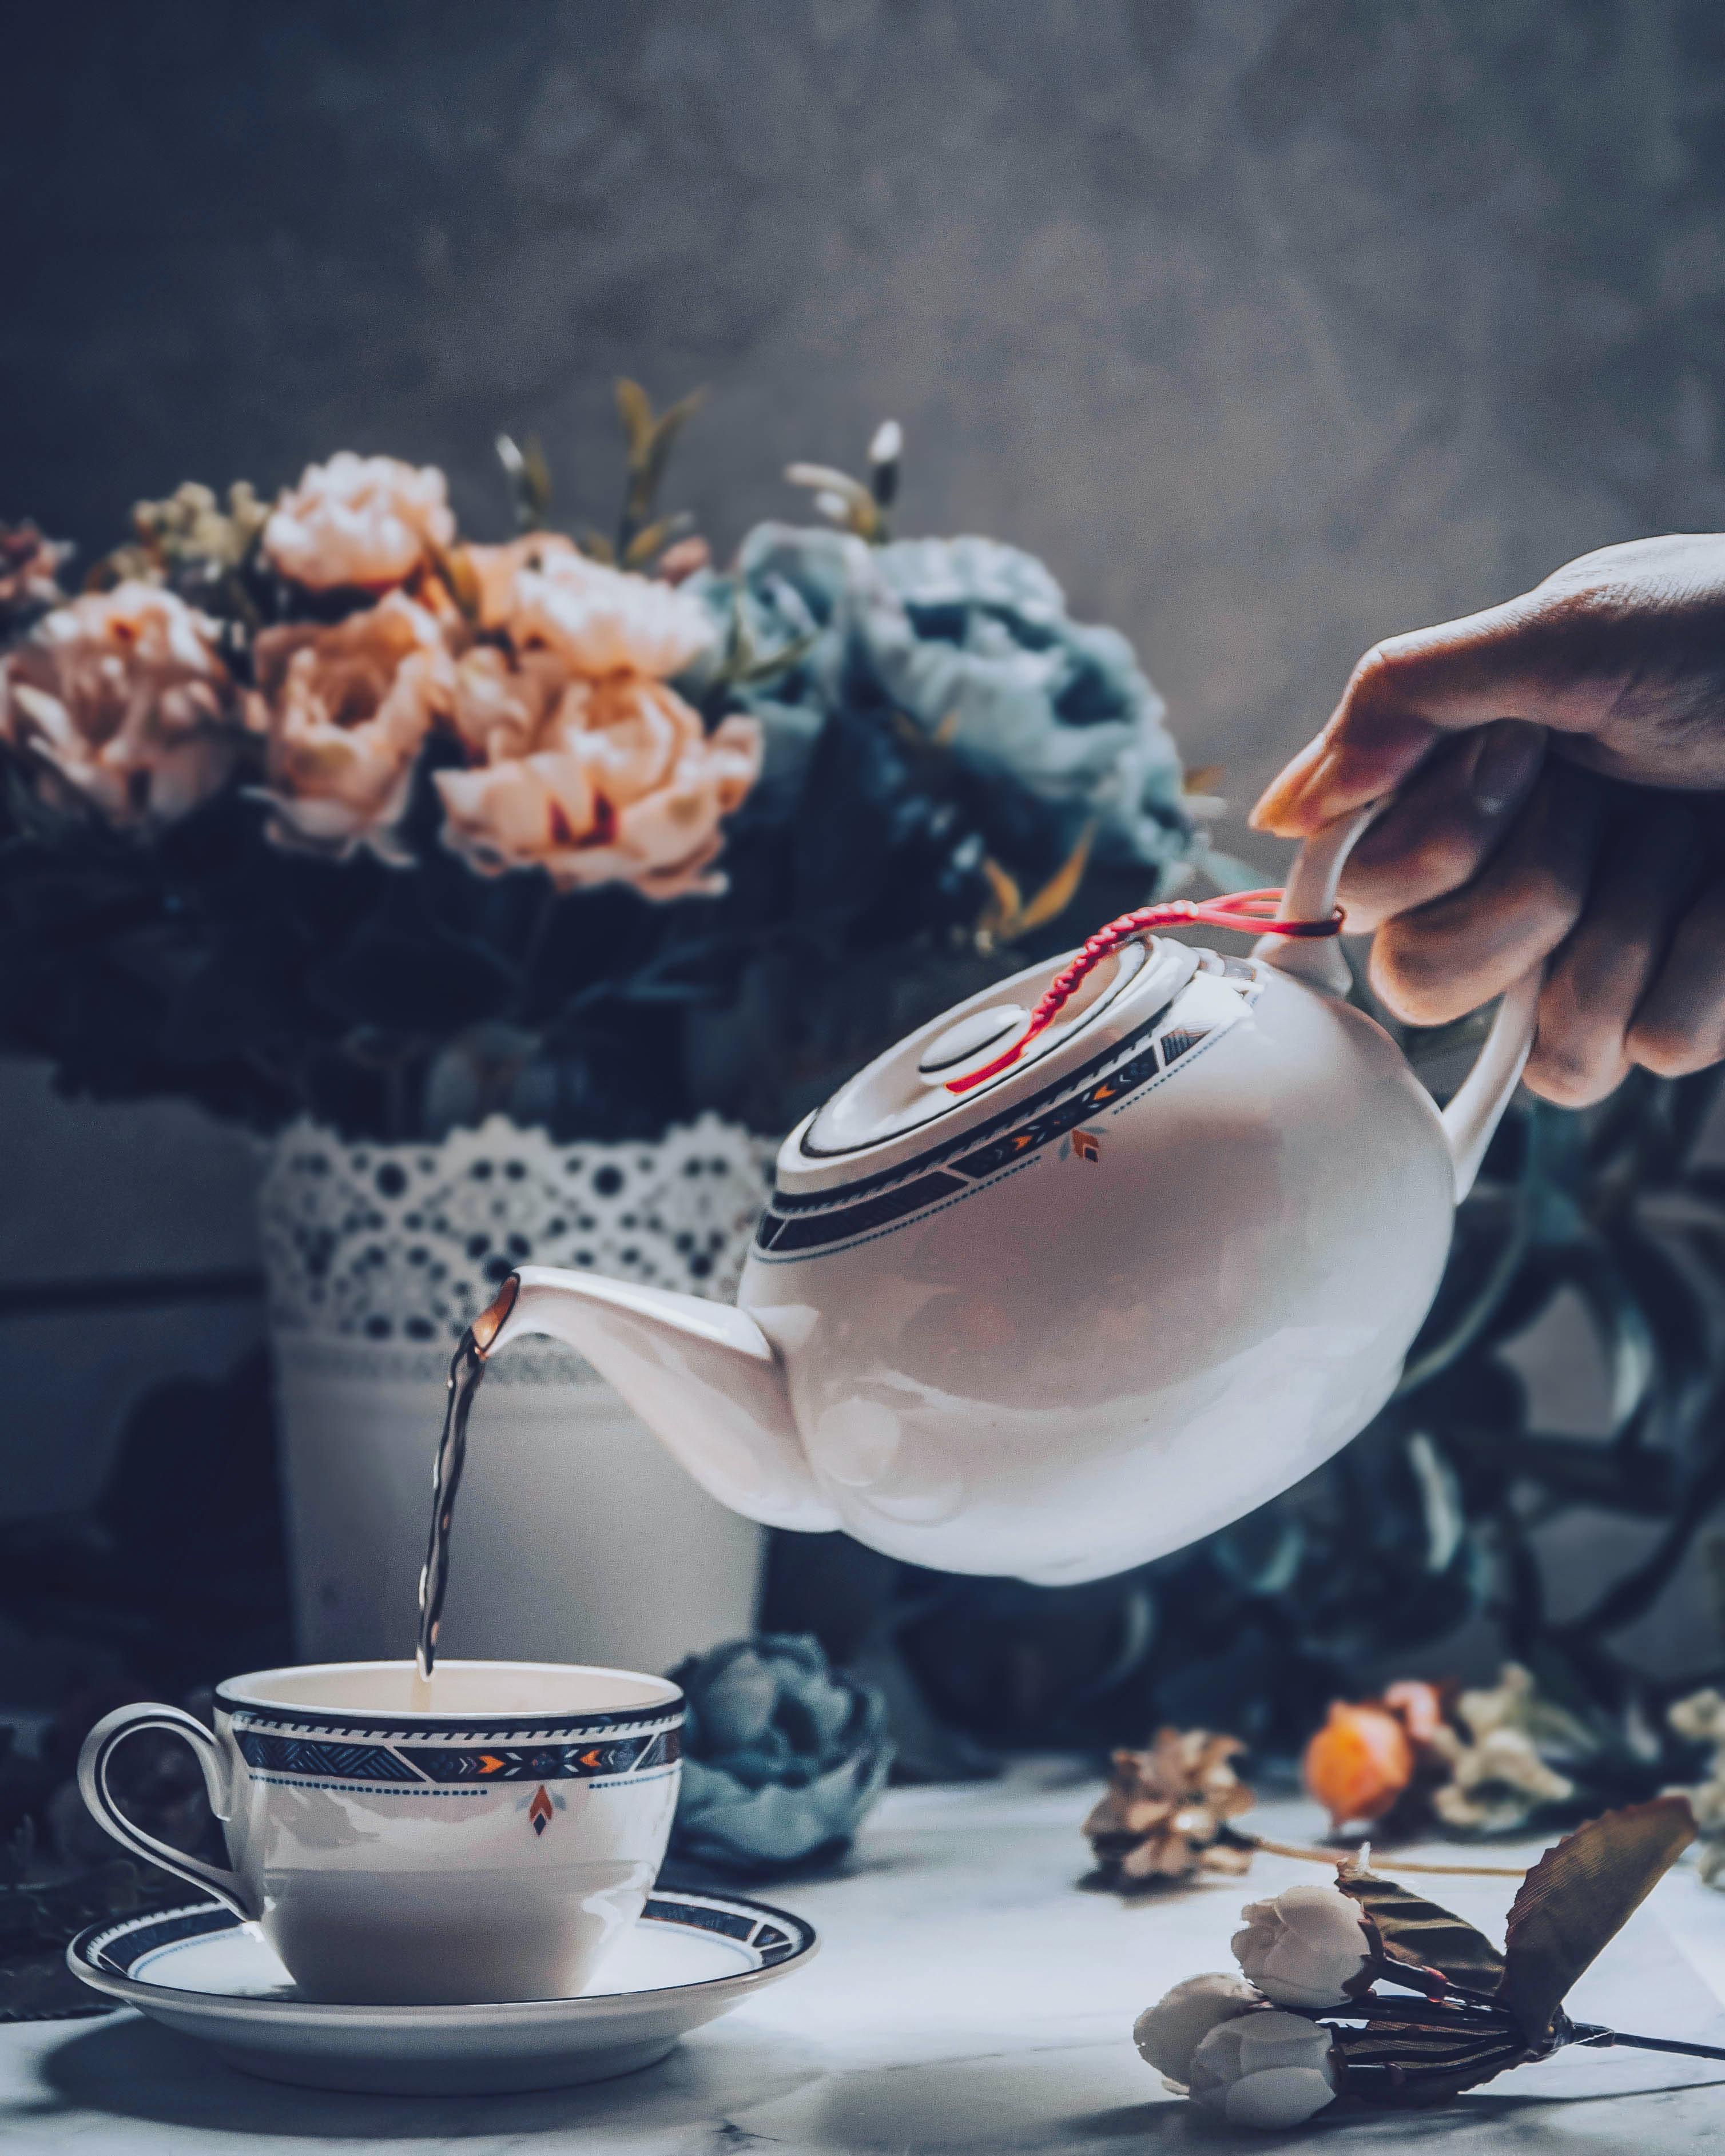 person holding white ceramic teapot